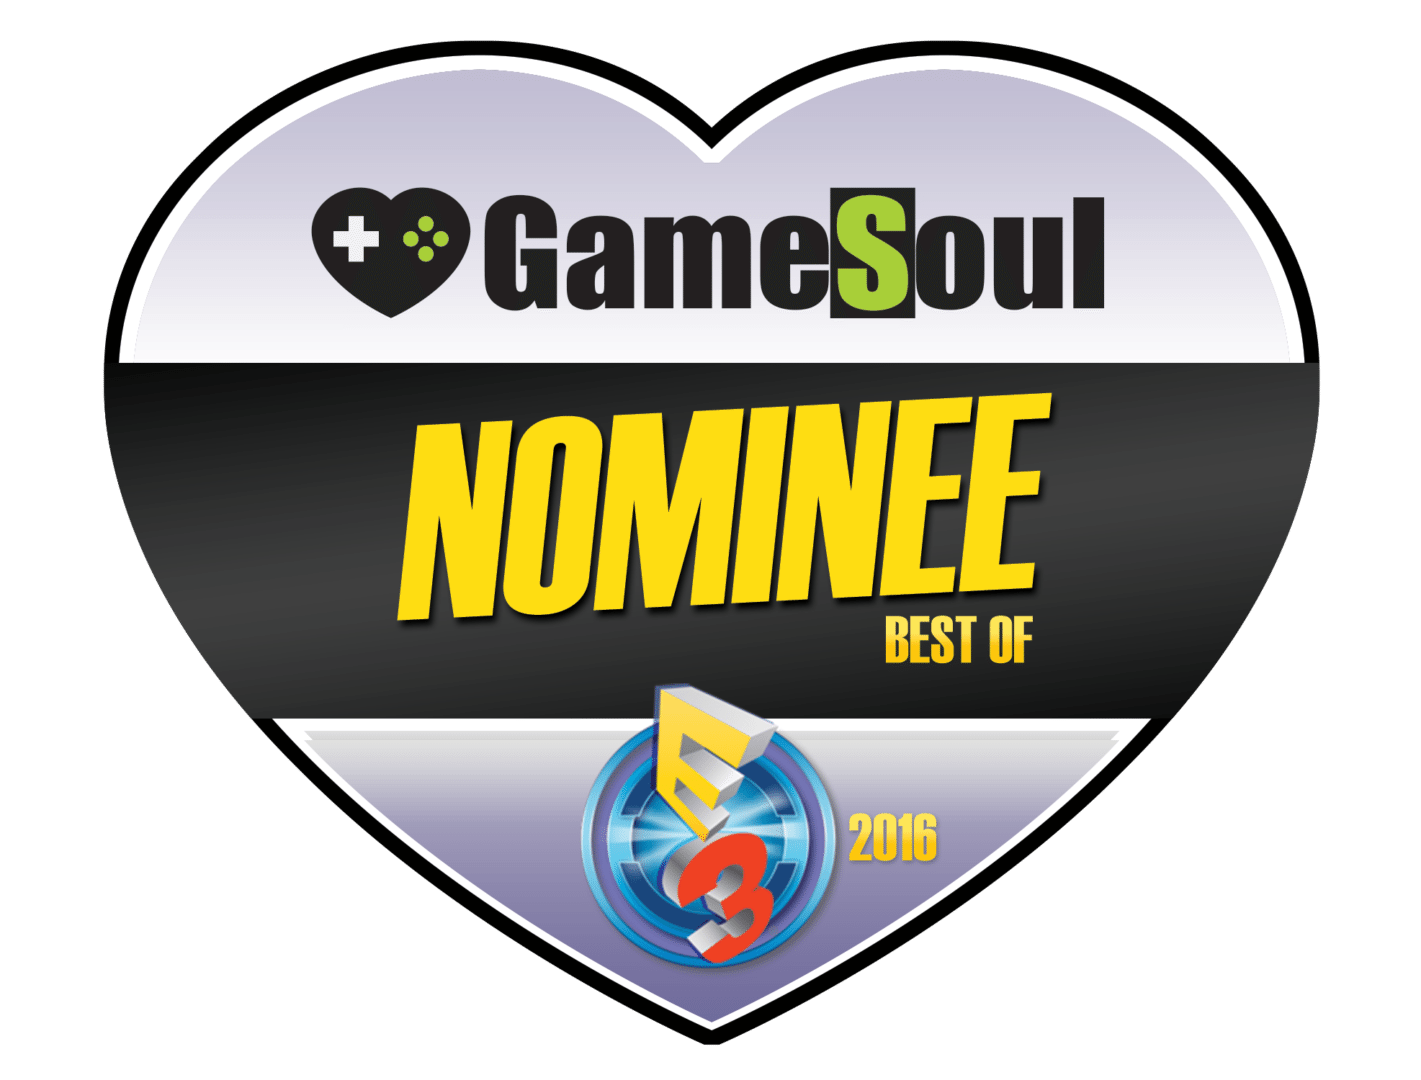 Best of E3 2016 - Nominee - GameSoul